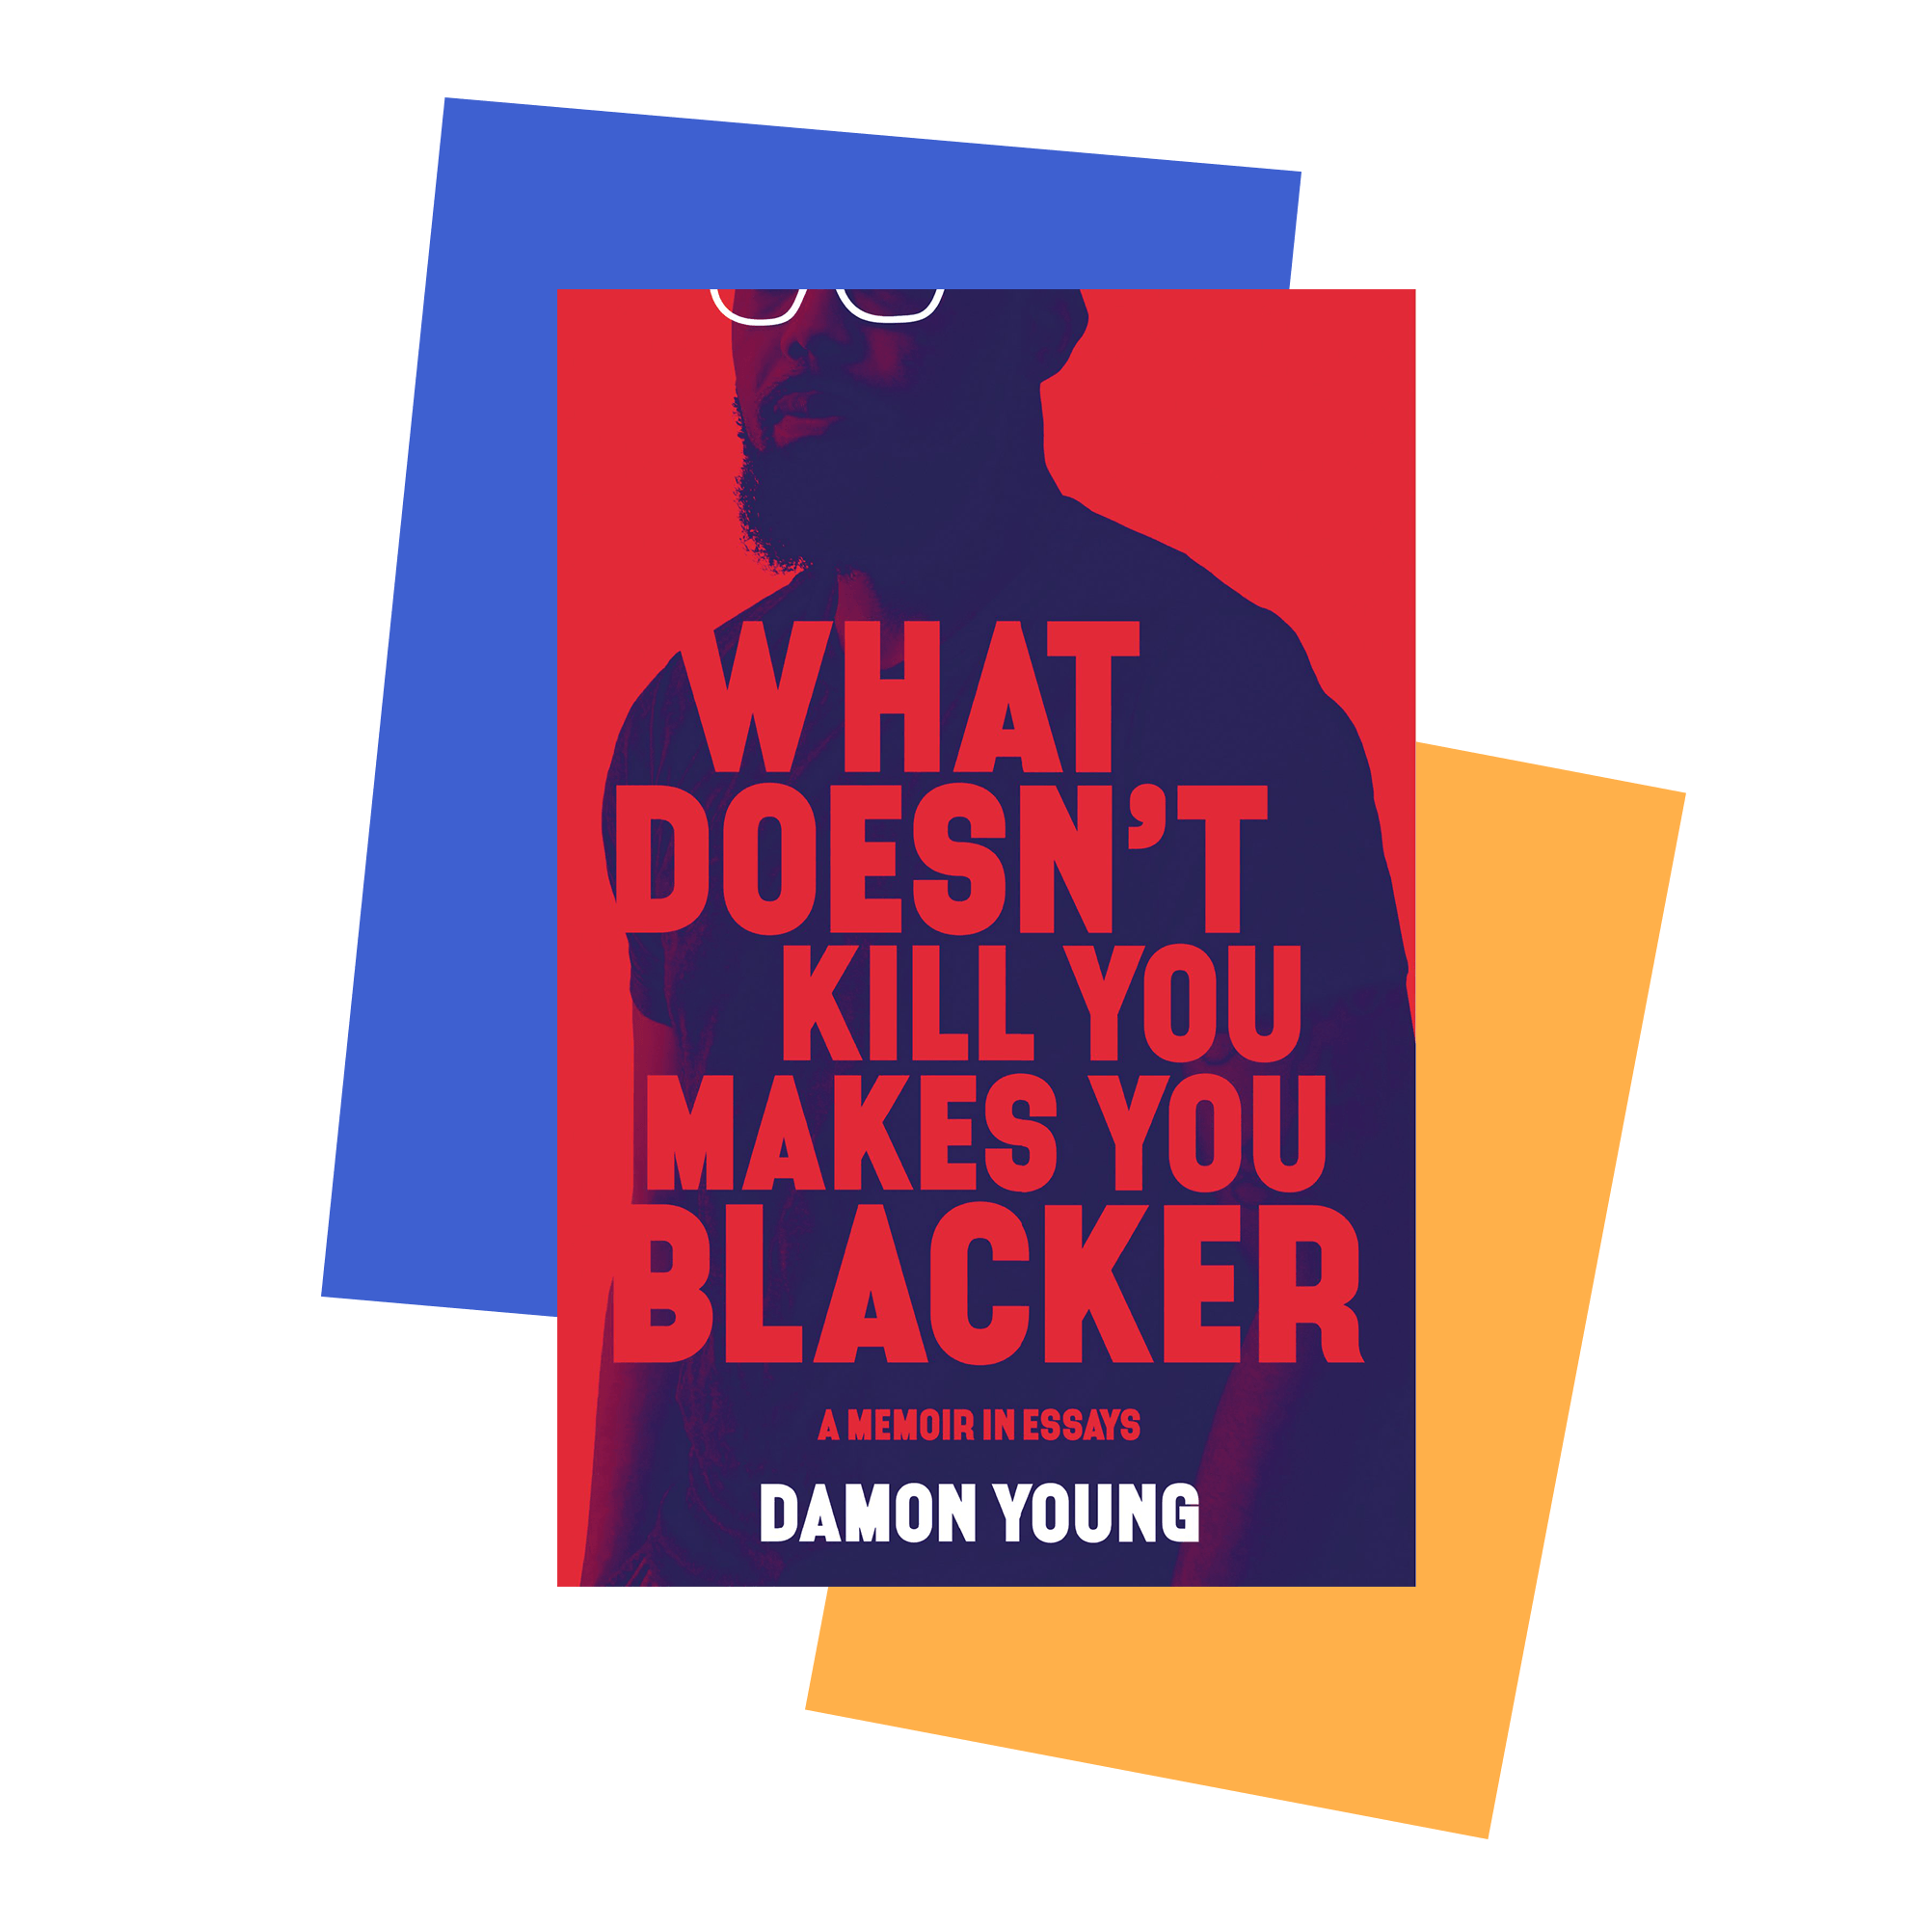 Book jacket cover for What Doesn't Kill You Makes You Blacker: A Memoir in Essays by Damon Young